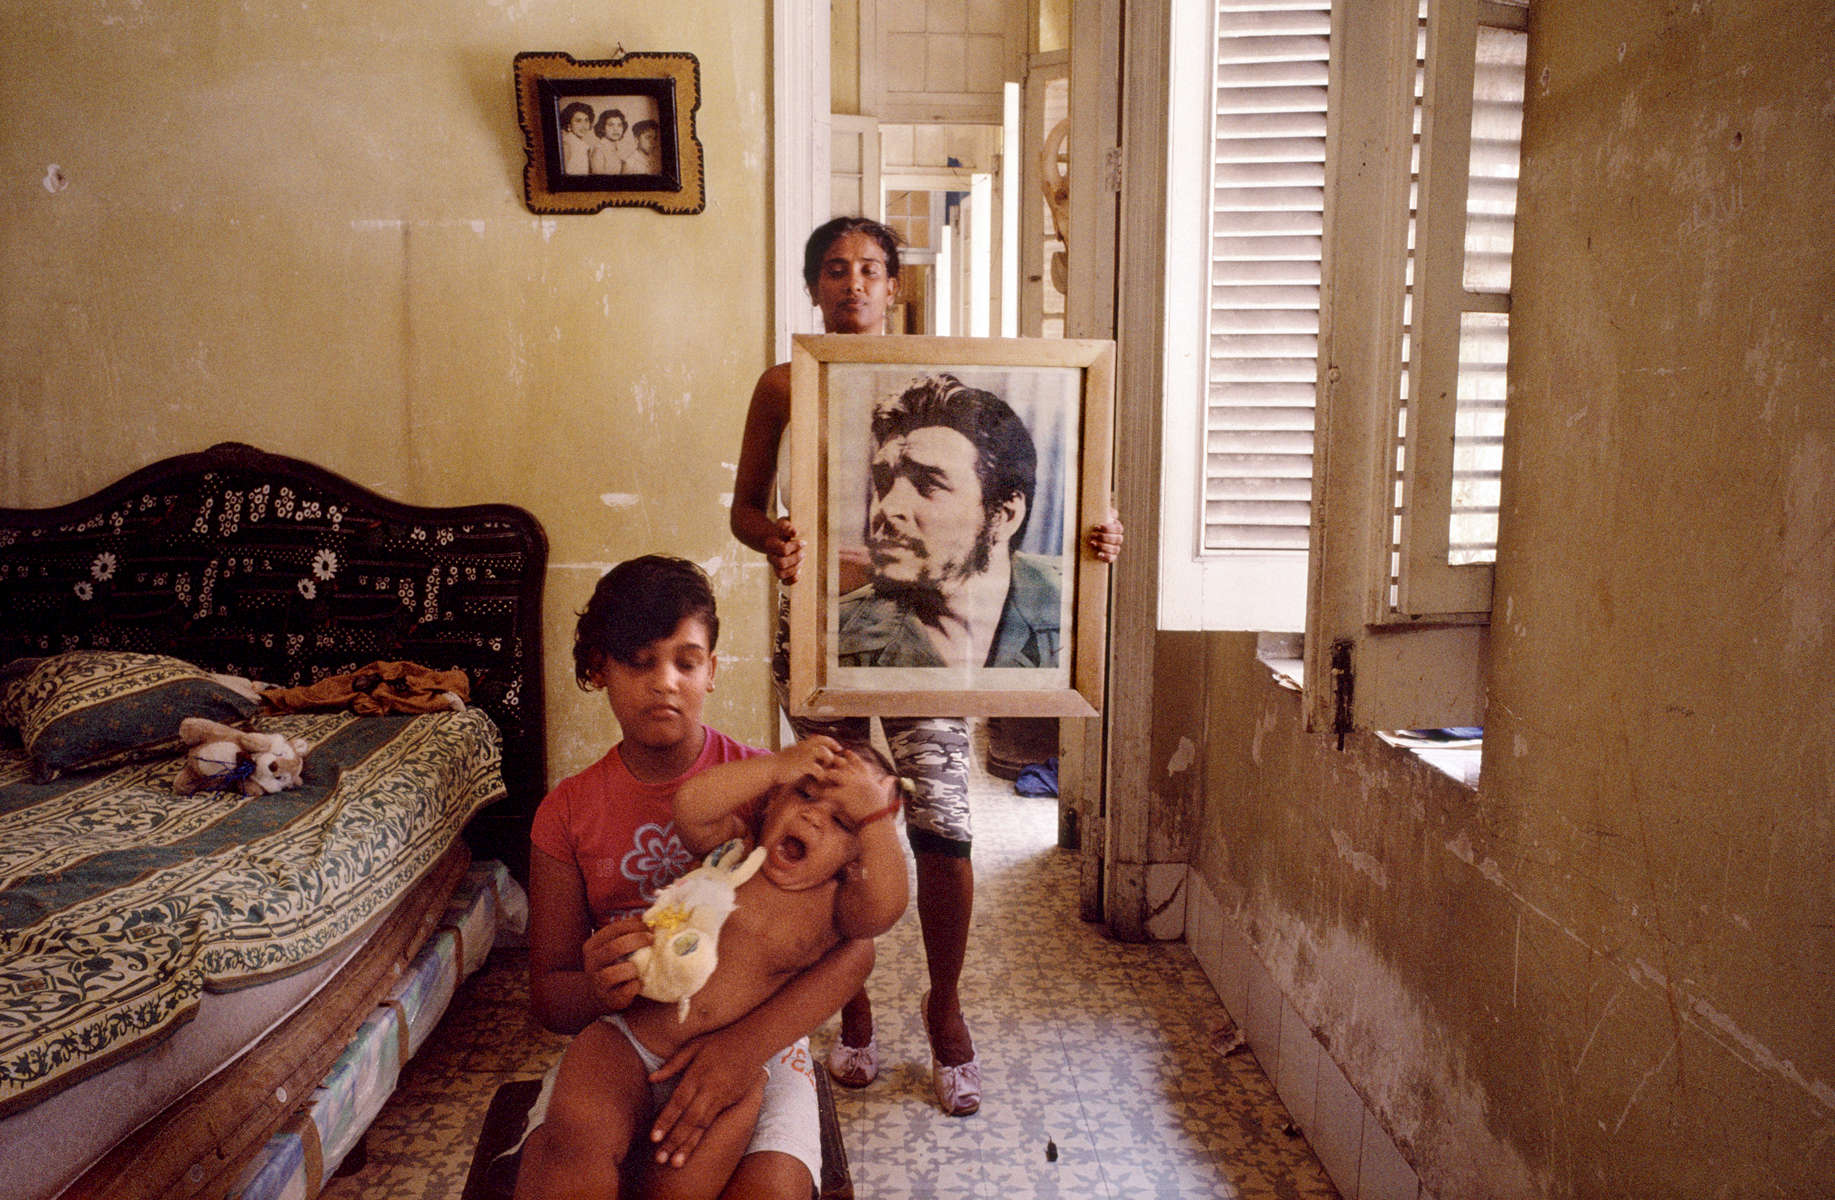 Chavela poses for her protrait while holding her cousin. Her mother, in the back, holds an image of Ernesto Che Guevara, who was a major figure of the Cuban Revolution, and has become a symbol of rebellion througout the world. Havana, Cuba